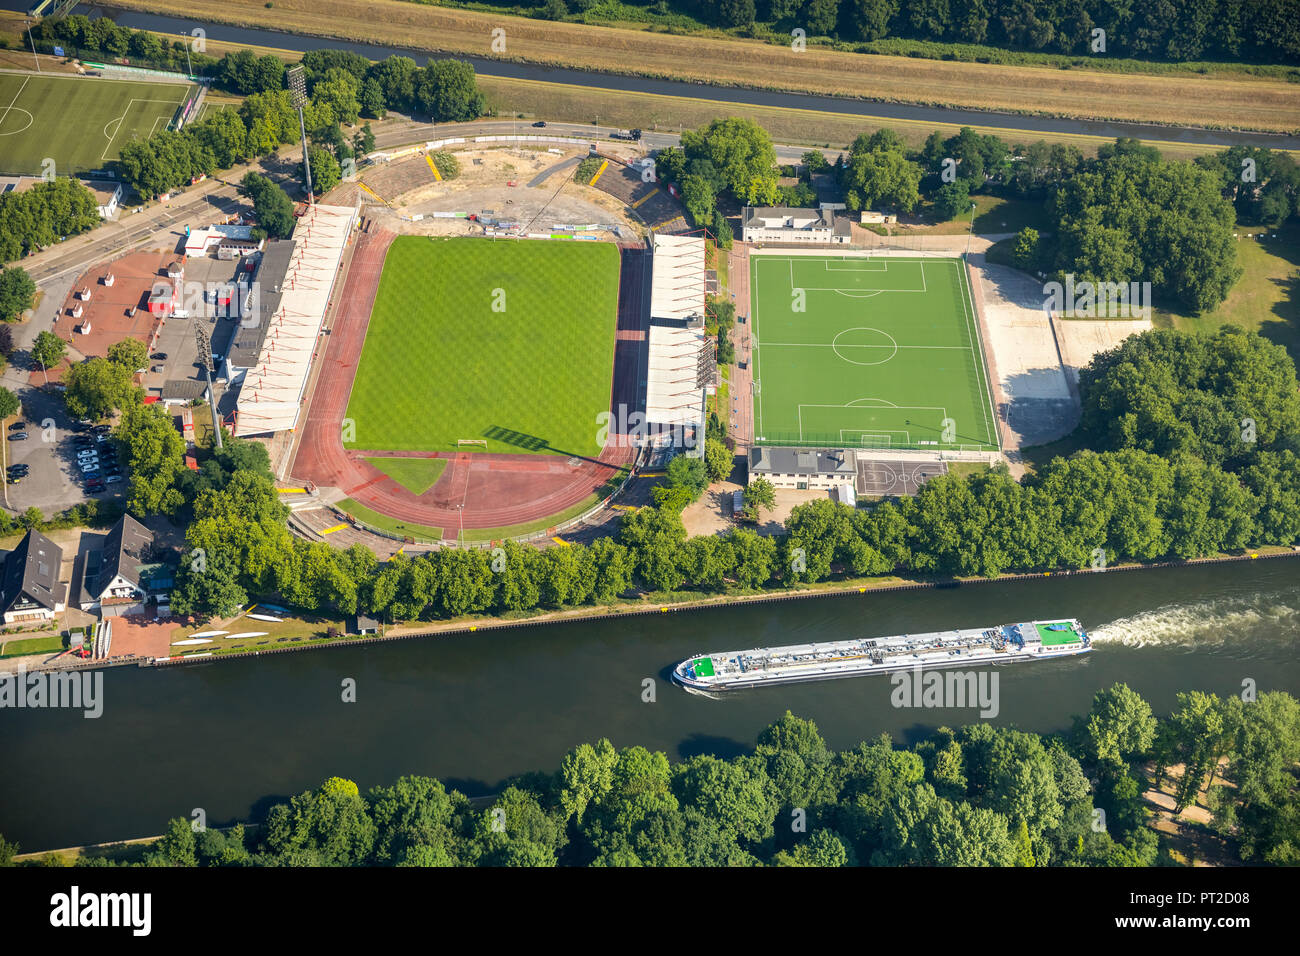 Stadium Niederrhein, new north tribune, sports and leisure complex SSB, Emscher area north of the stadium, Oberhausen, Ruhr area, North Rhine-Westphalia, Germany - Stock Image